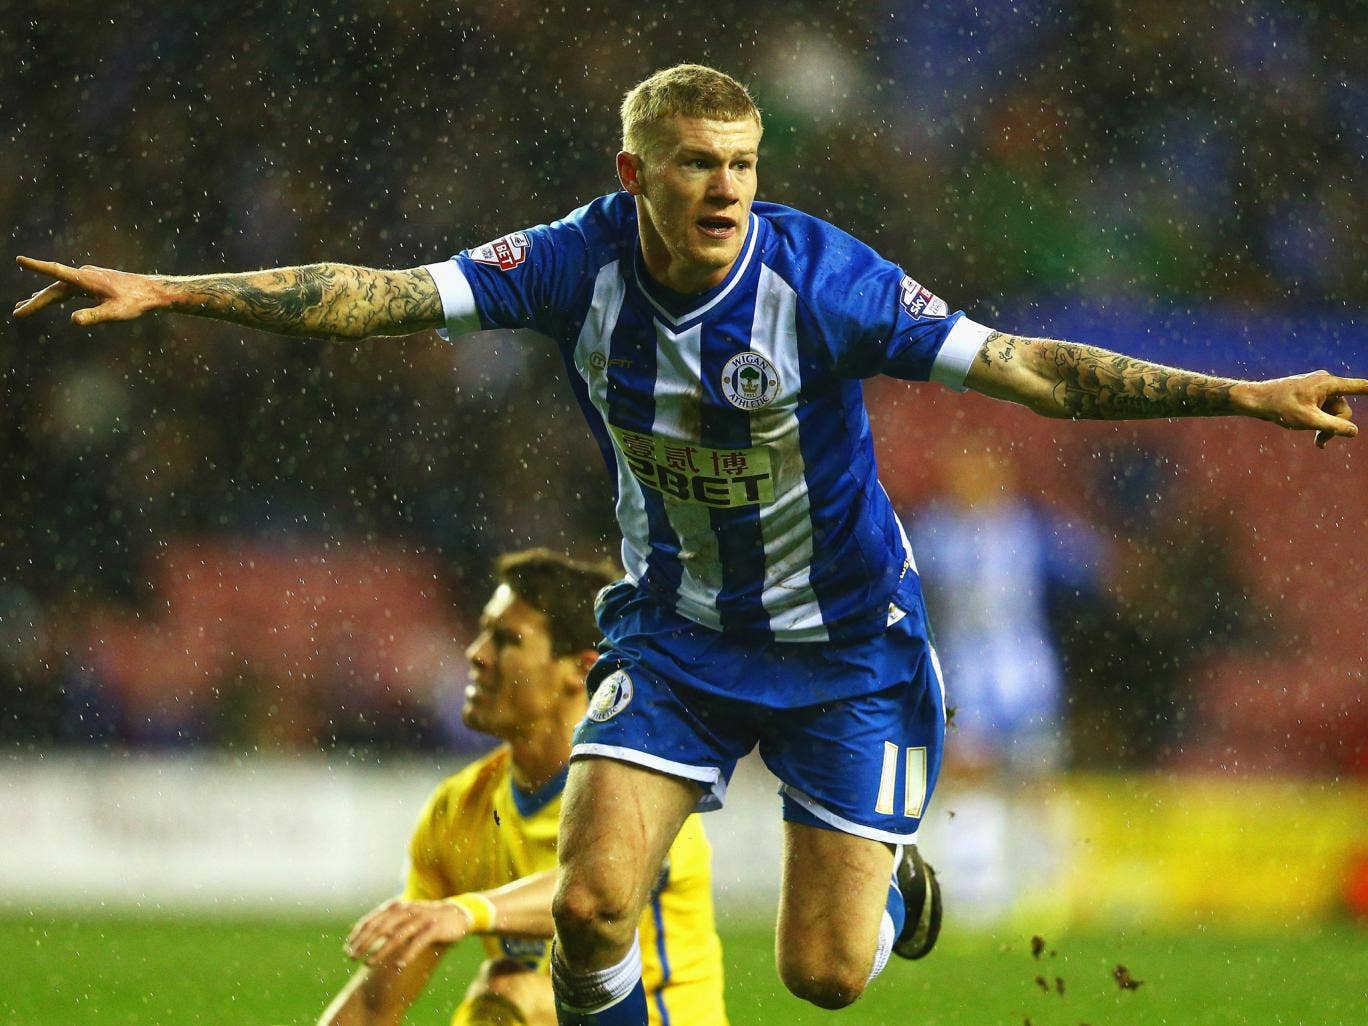 James McClean celebrates after scoring the winner for Wigan against Crystal Palace in the FA Cup